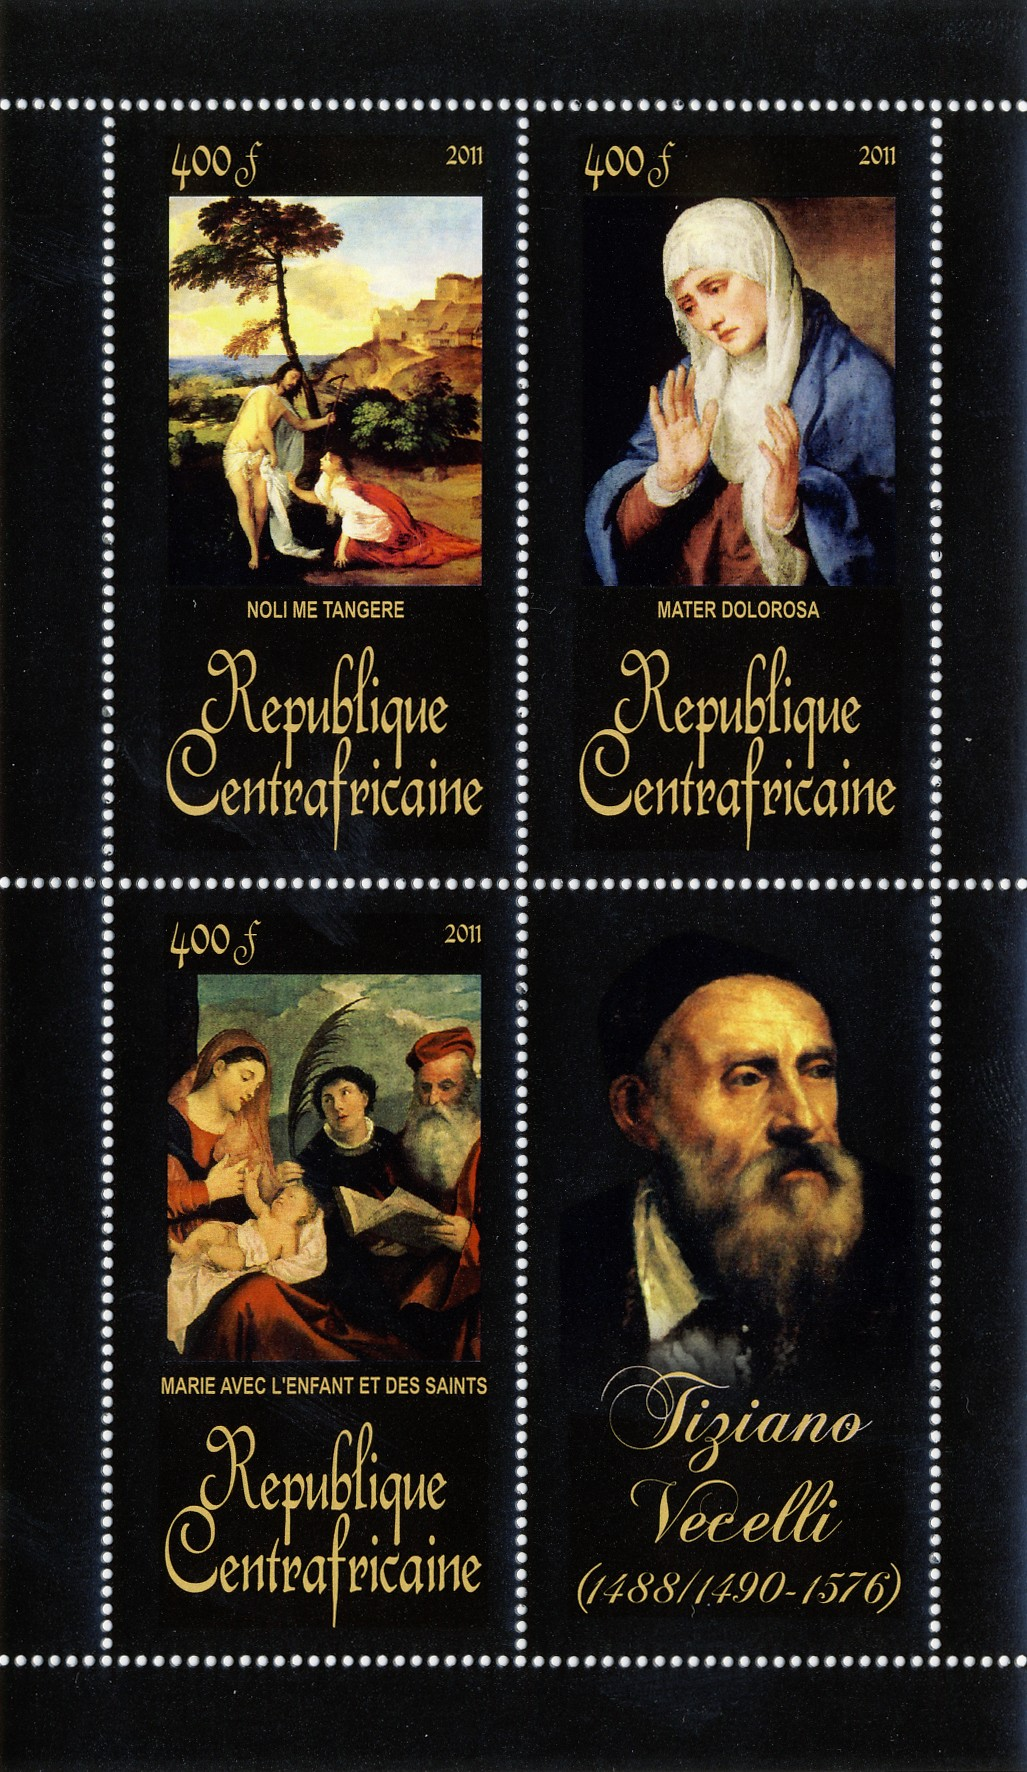 Paintings of  Tiziano Vecelli, (1488/1490-1576). (Noli me tangere, Marie avec l'enfant et des saints). - Issue of Central African republic postage stamps